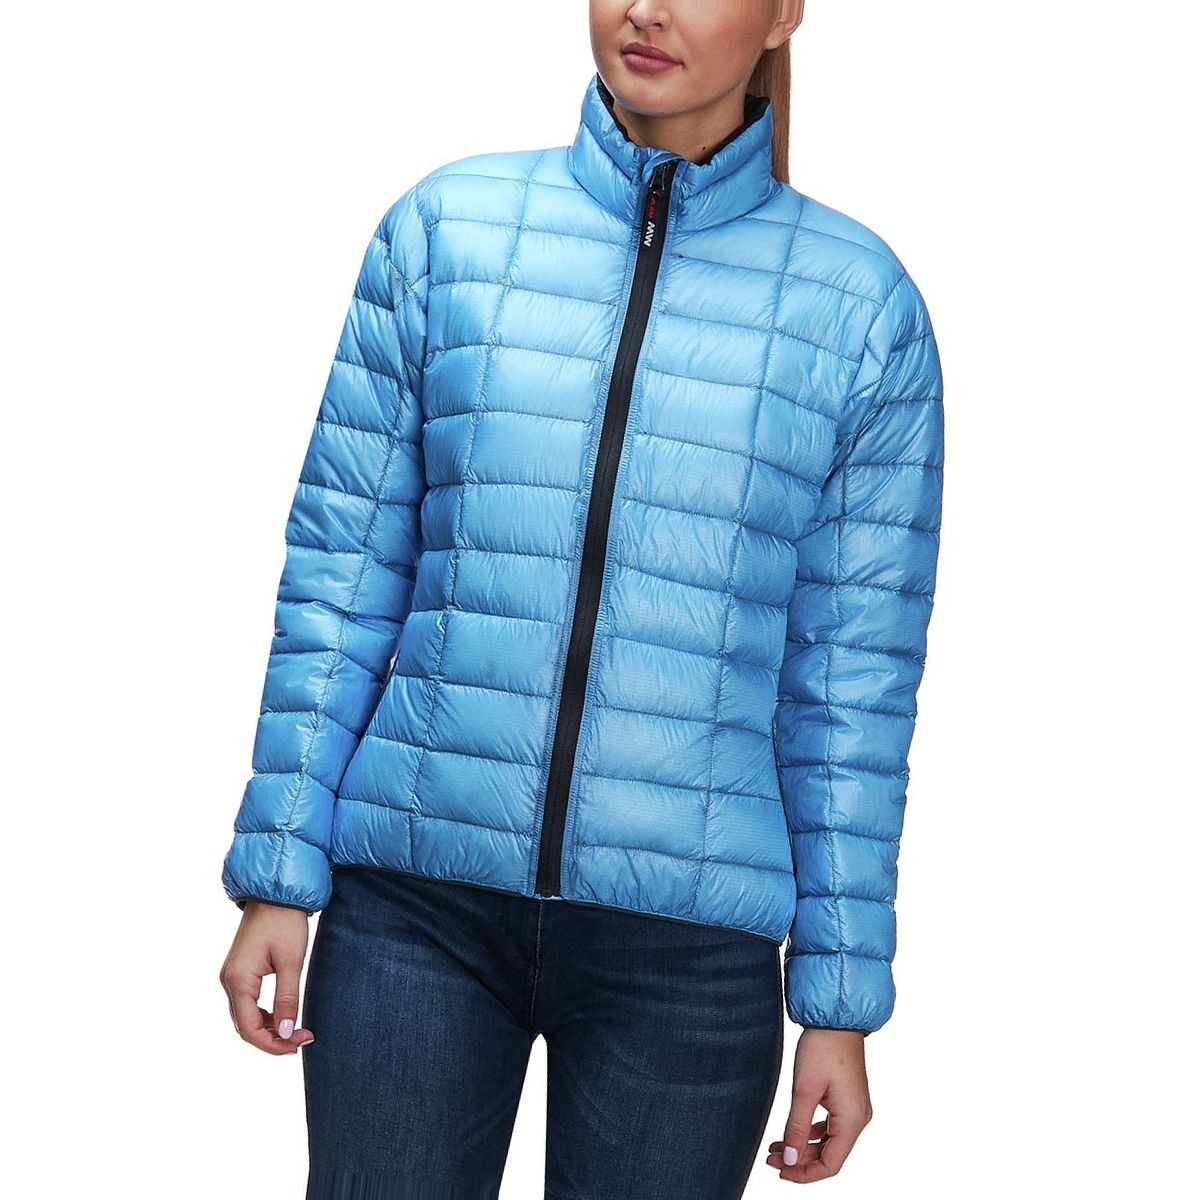 Western Mountaineering Quick Flash Down Jacket - Women's